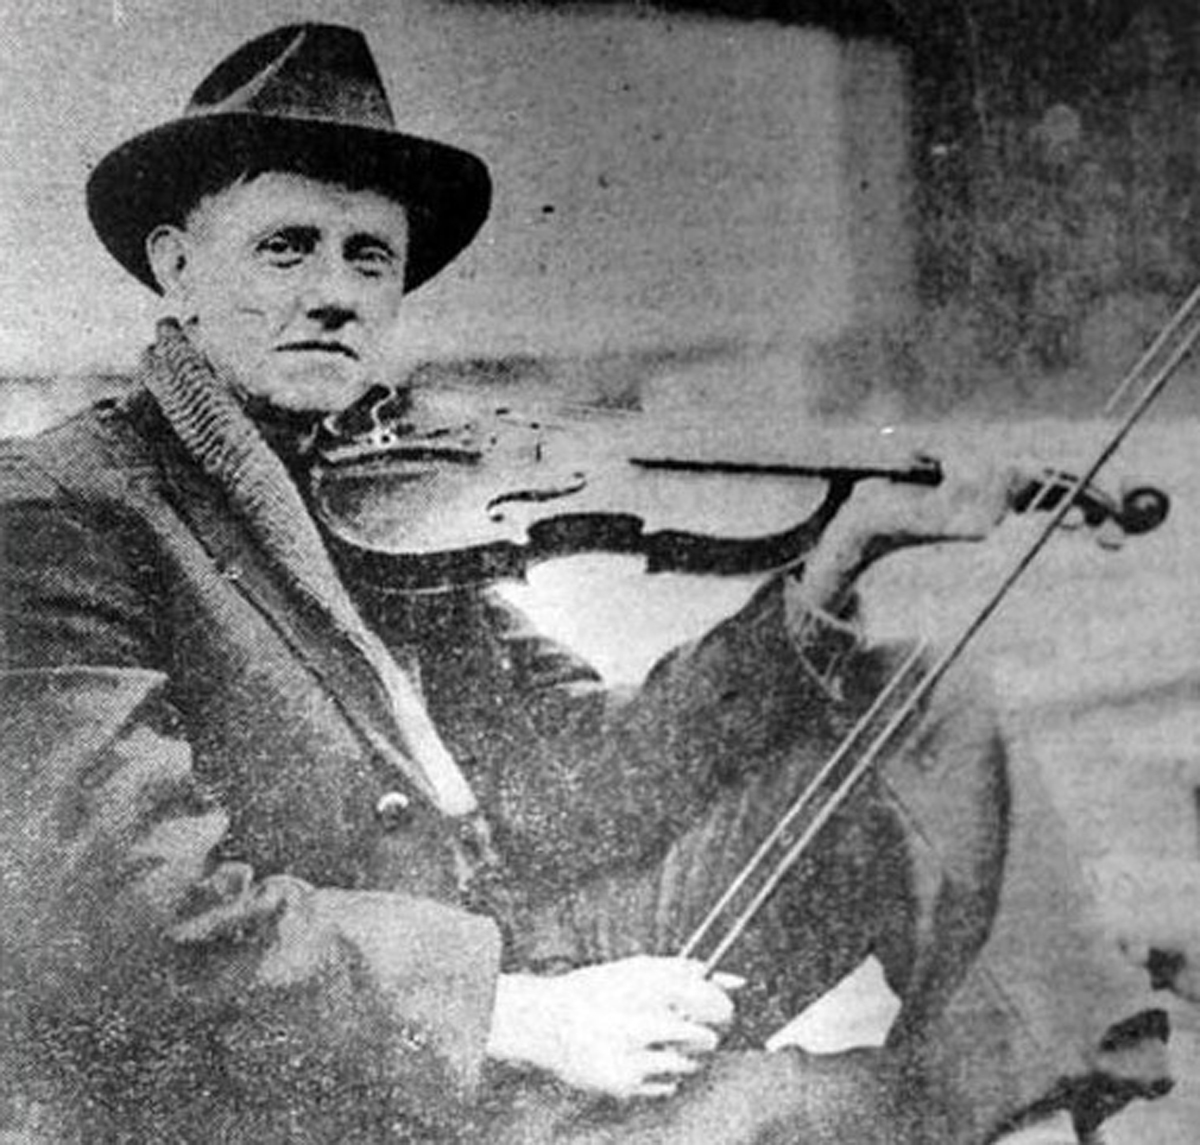 "John Carson was born near Fannin County, Georgia in 1868. He learned to play the fiddle at a young age and began performing in the streets for tips. In 1914, while working in a textile mill, workers of the mill went on strike. During the strike he began playing and selling songs in the streets of North Atlanta. On April 1, 1913, Carson performed at the first annual ""Georgia Old-Time Fiddlers' Convention"" coming in fourth. Over the years he was considered ""Champion Fiddler of George"" seven times and acquired the ""Fiddlin'"" part of his name by the governor of Tennessee. In September 1922, Carson made his radio debut at the Atlanta Journal radio station WSB and in June 1923, Carson made his recording debut in an empty building on Nassau Street in Atlanta. He cut two sides to the record, ""The Little Old Log Cabin in the Lane"" and ""The Old Hen Cackled and the Rooster's Going To Crow."" This record is considered to be the first country song recorded with vocals and lyrics. Carson recorded almost 150 songs between 1923 and 1931. He wrote more than 150 songs in his life, but only nine were ever copyrighted."